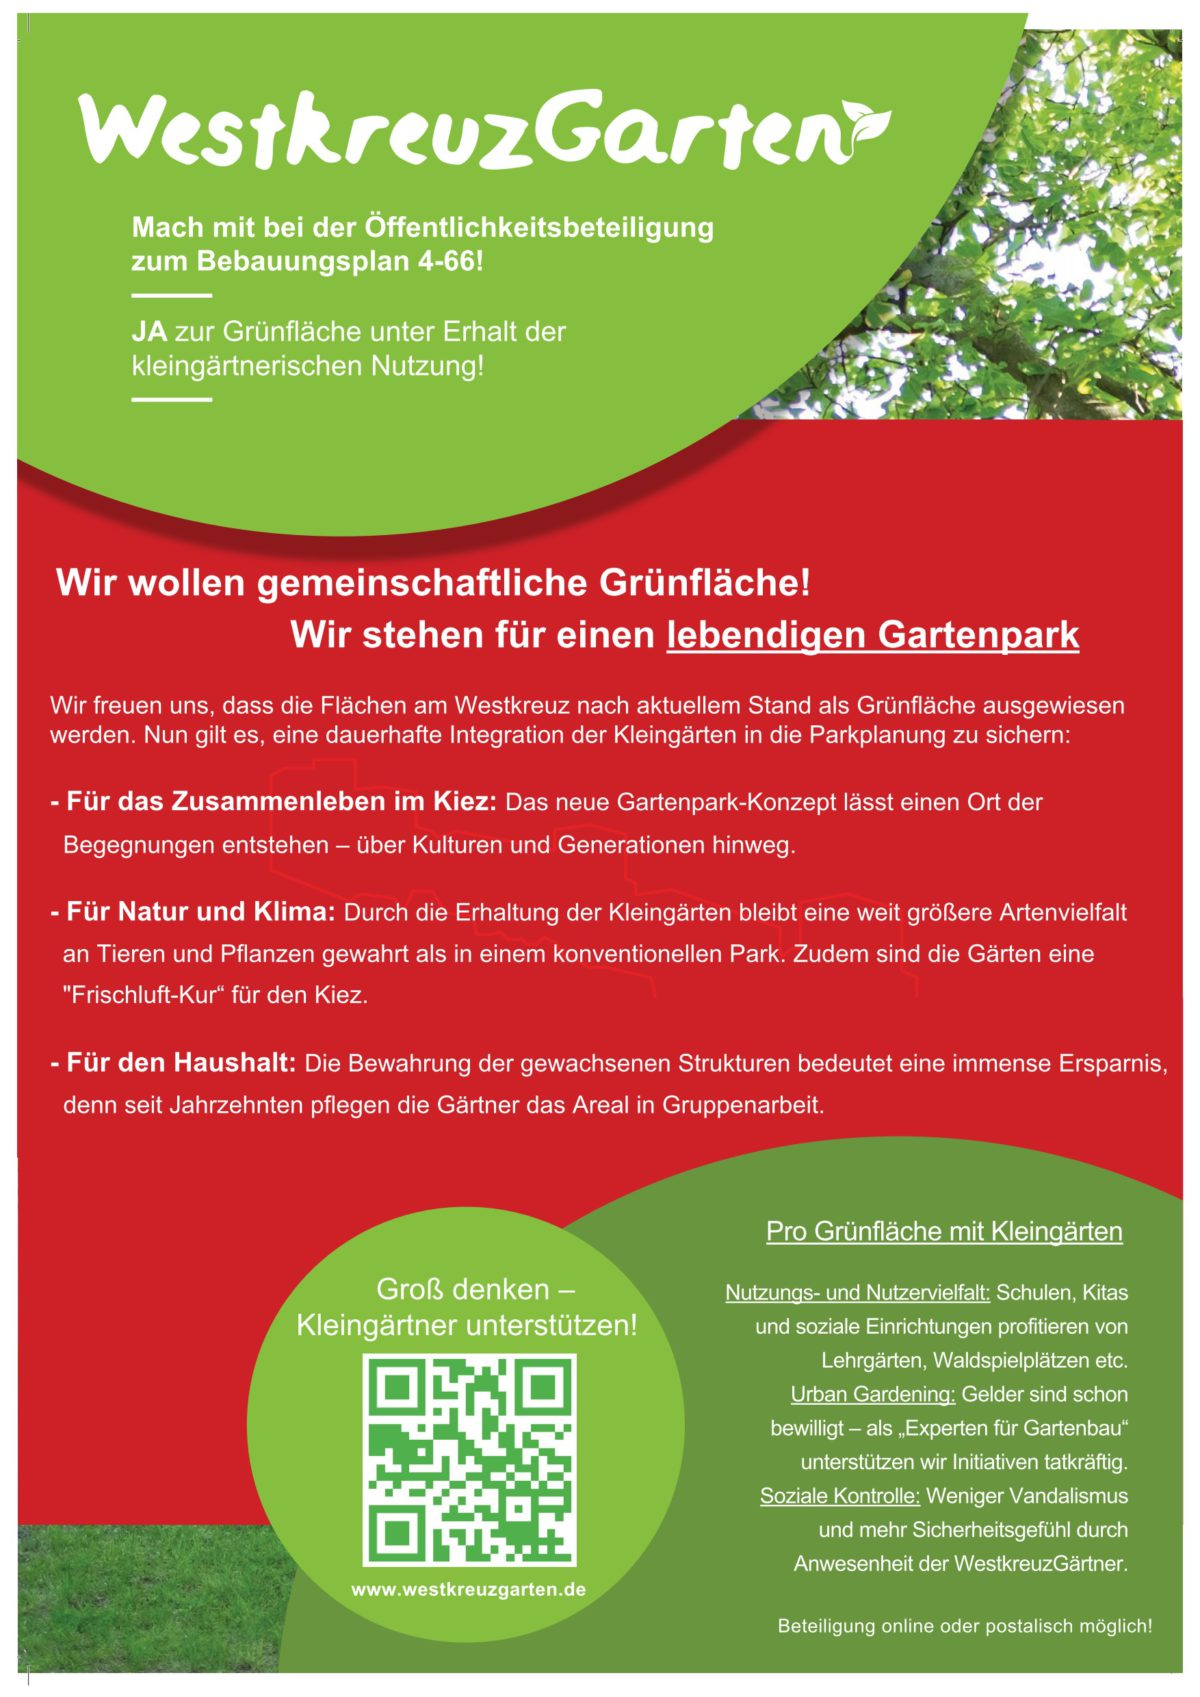 Unsere Position